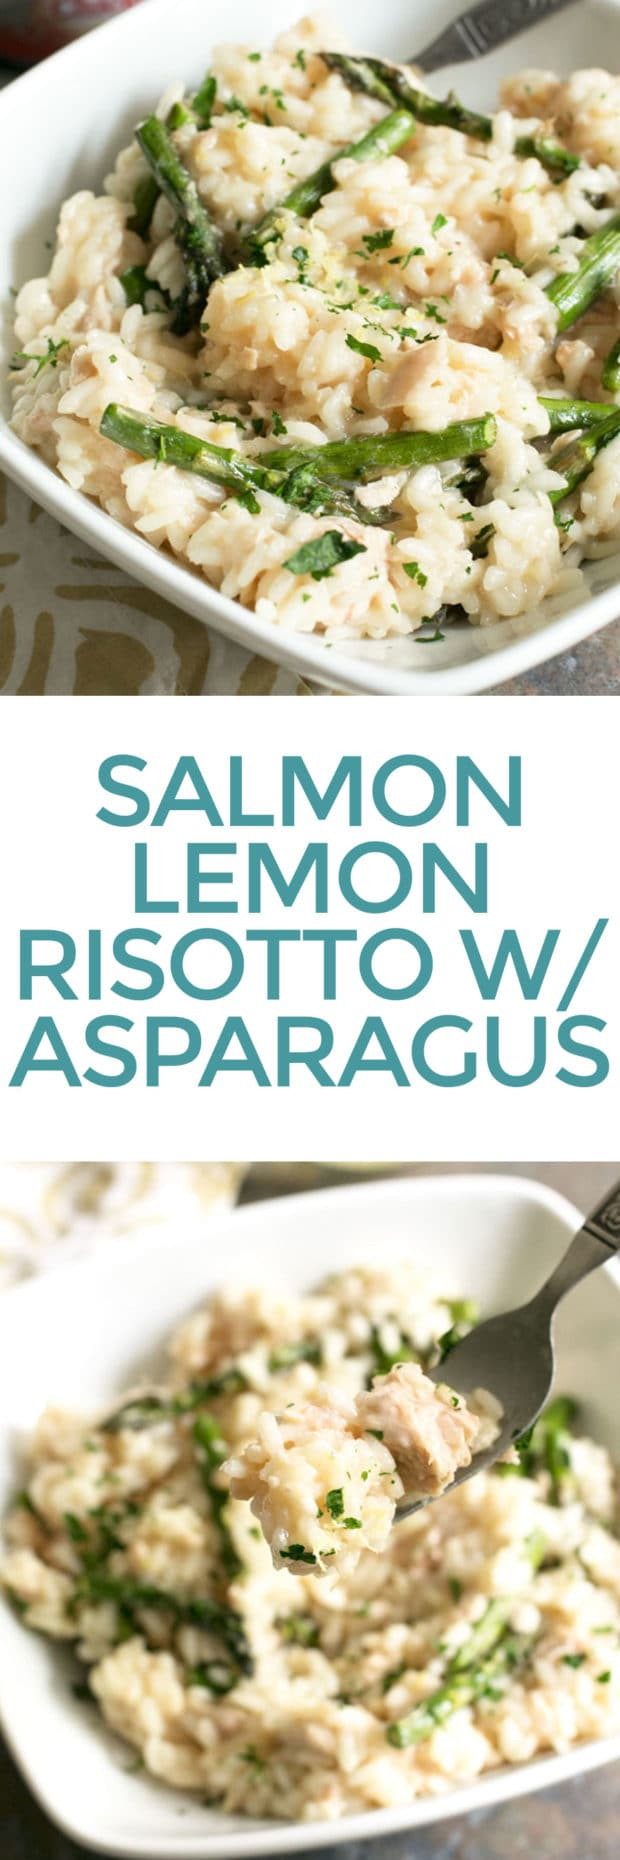 Salmon Lemon Risotto with Asparagus   cakenknife.com